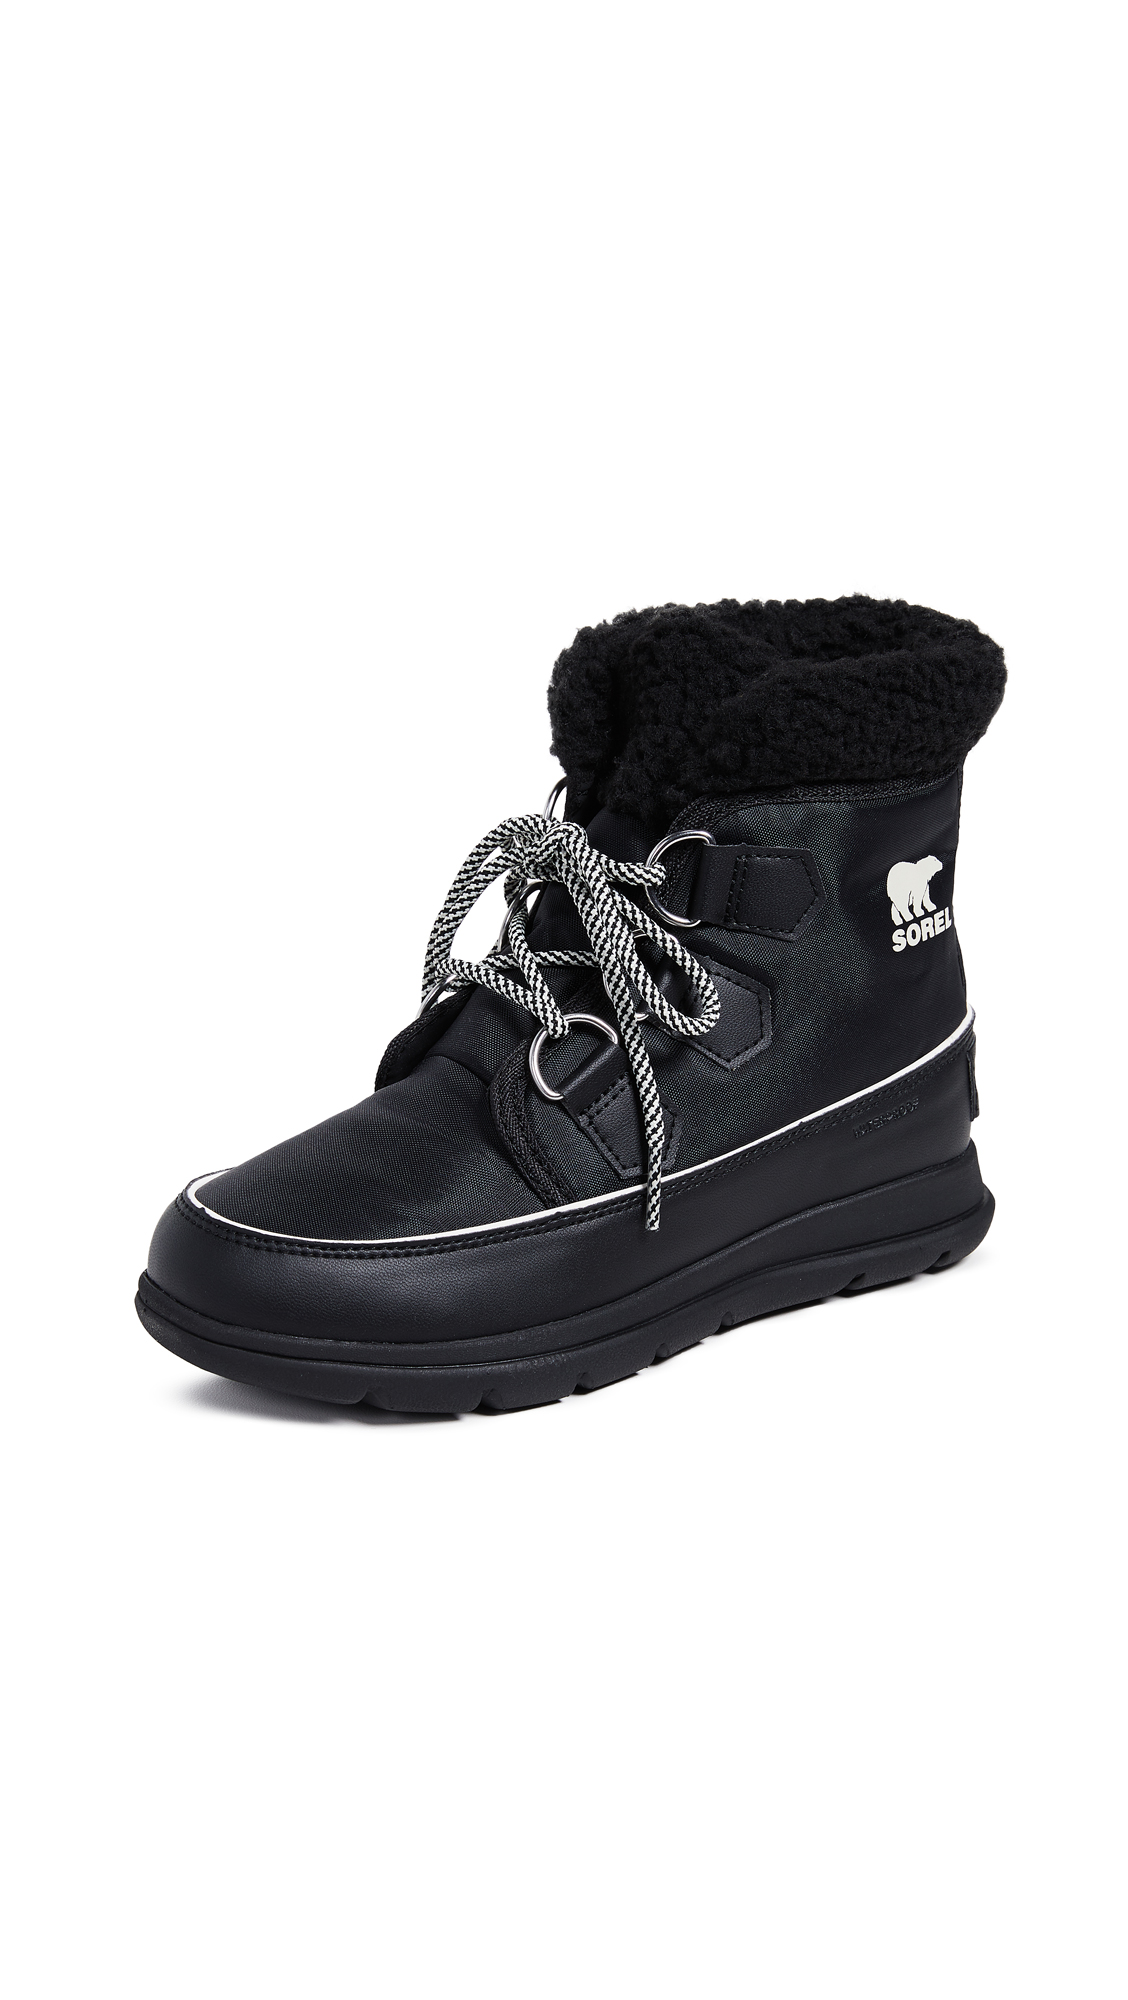 Sorel Sorel Explorer Carnival Boots - Black/Sea Salt